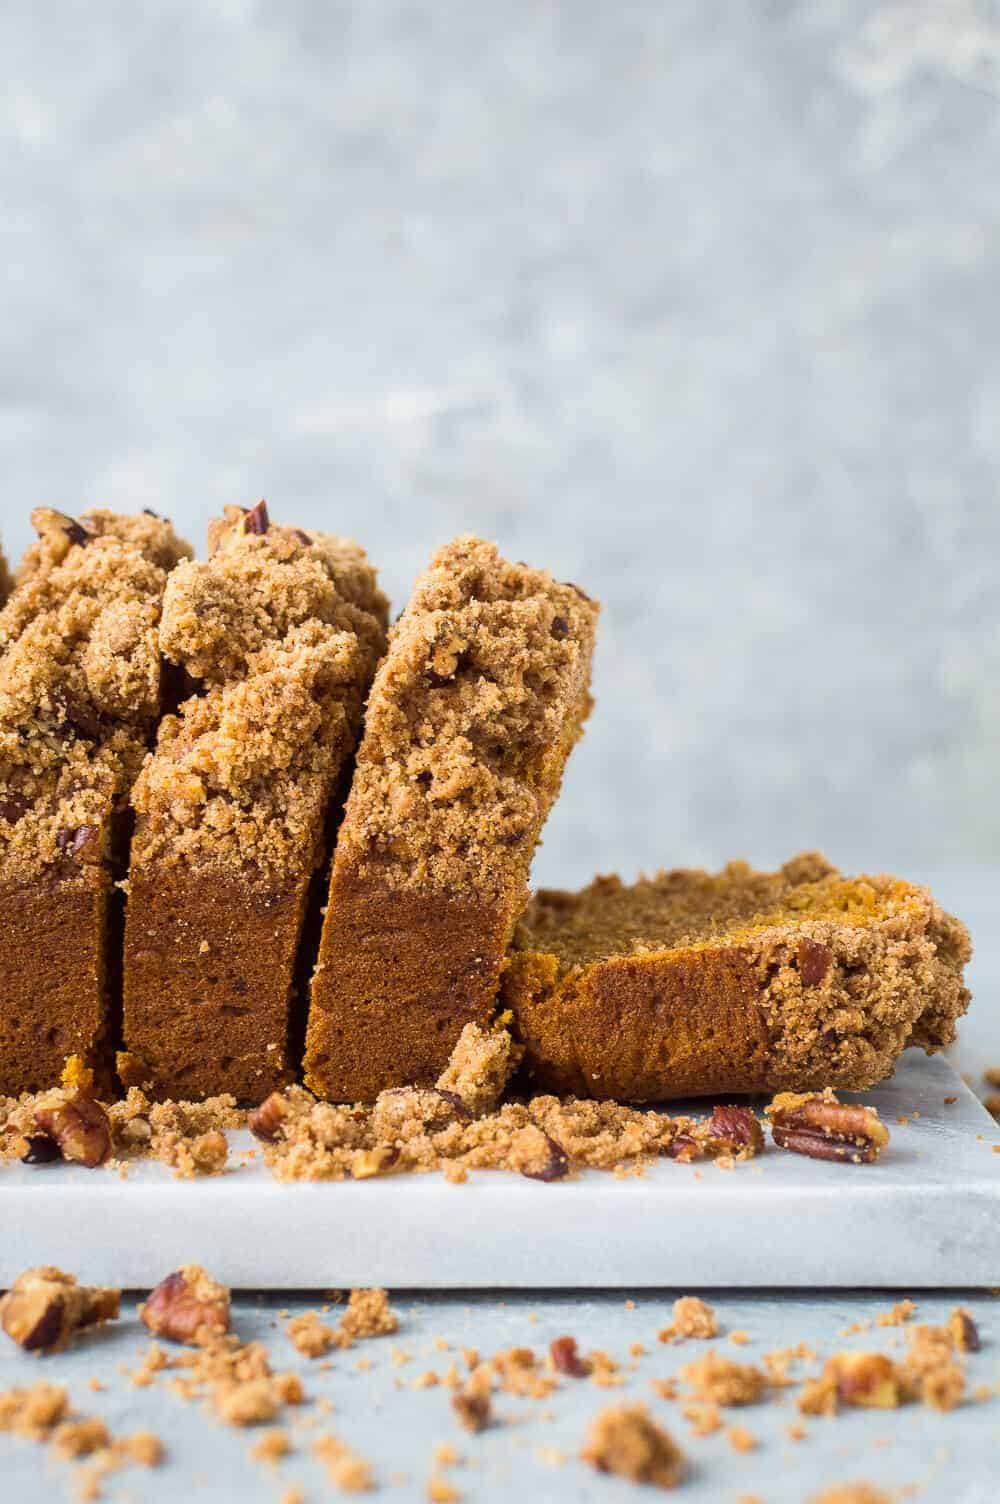 A side shot of sliced vegan sweet potato loaf cake with pecan streusel topping on a marble board and grey background.